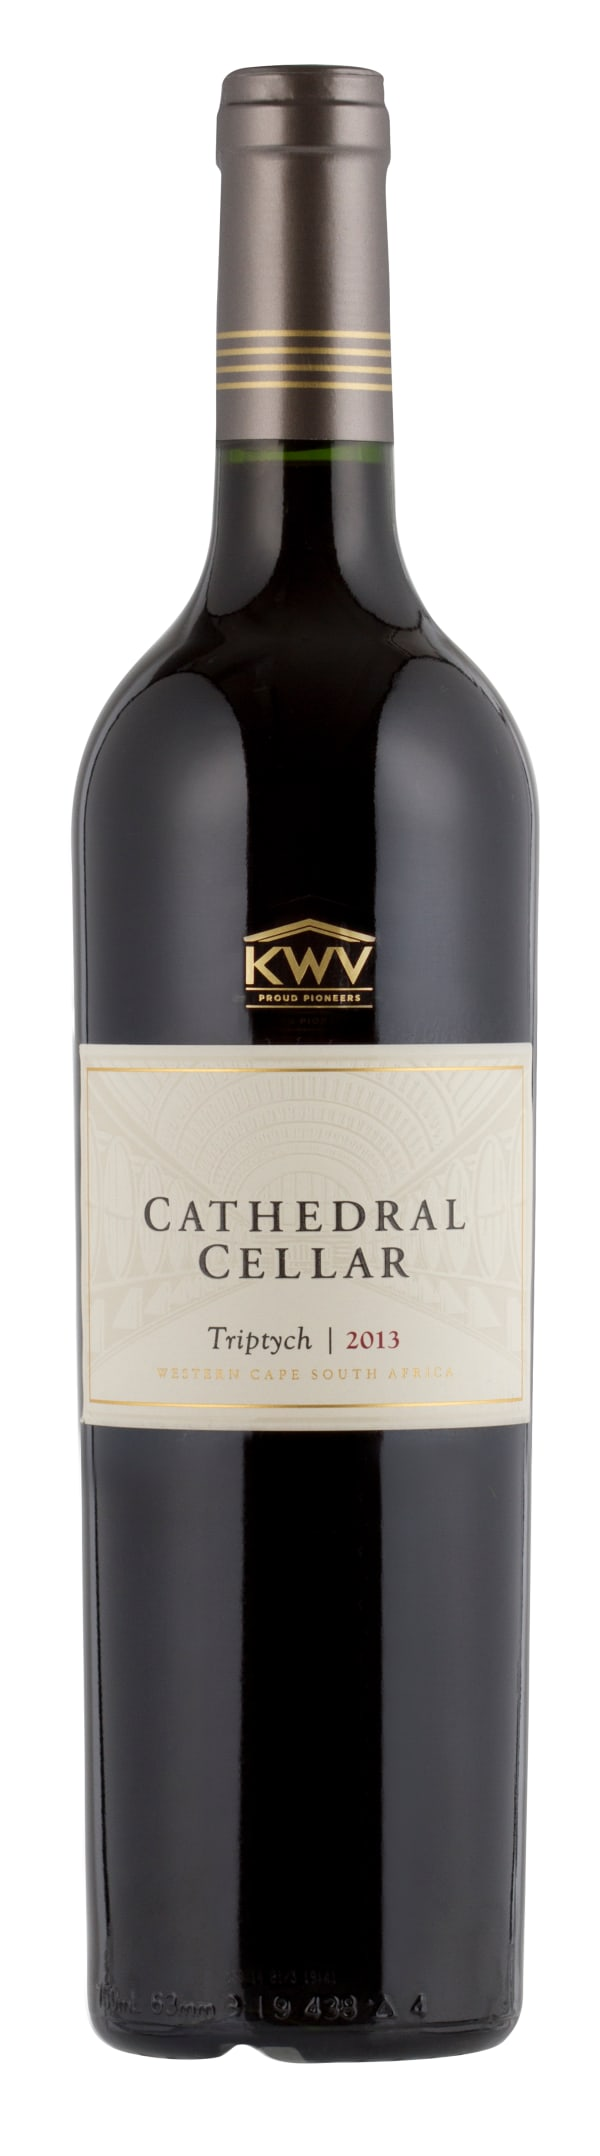 Cathedral Cellar Triptych 2014